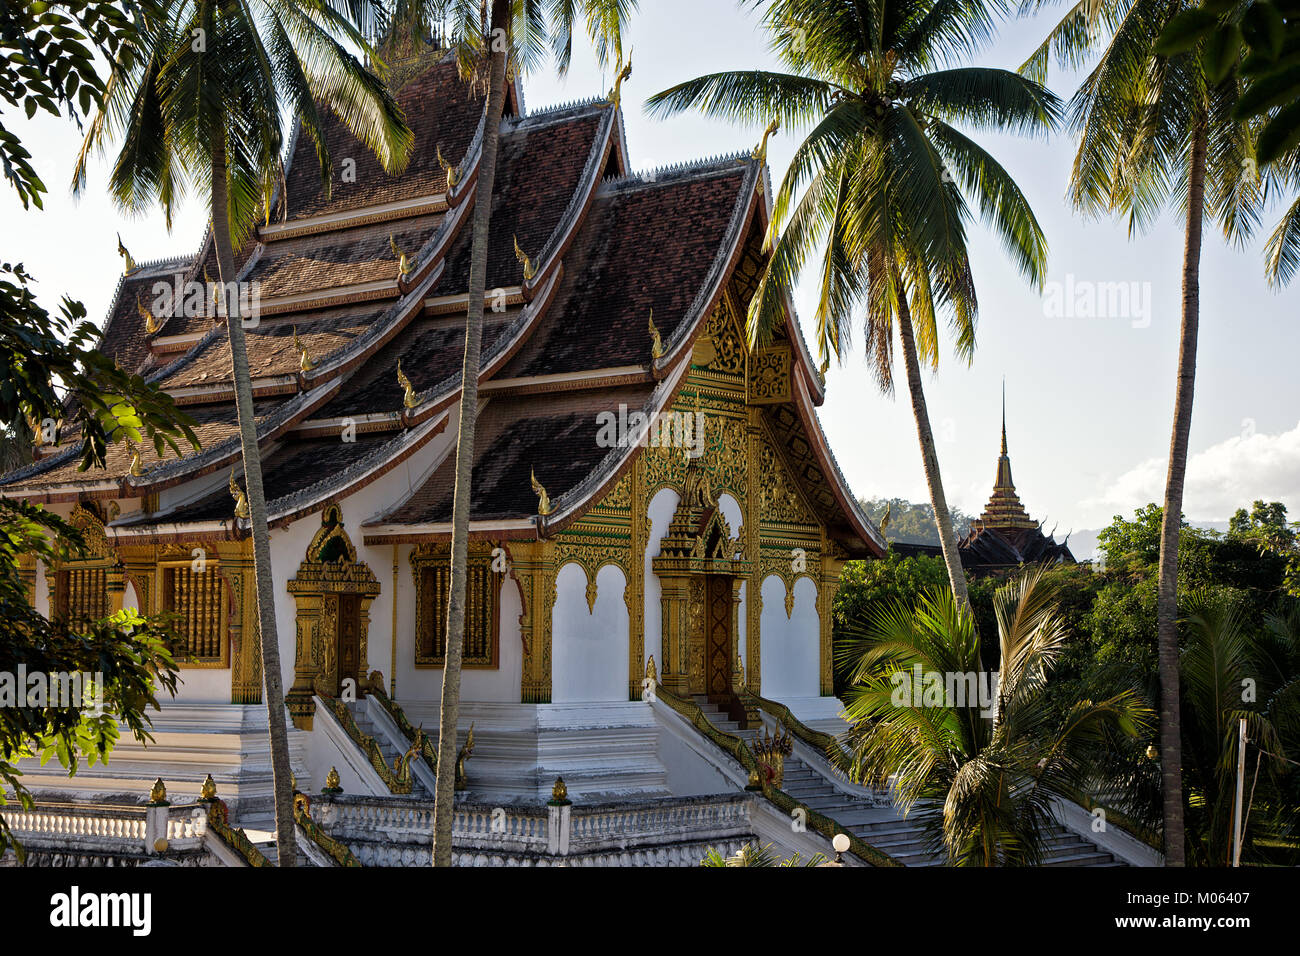 Haw Pha Bang Temple at the Royal Palace in UNESCO World Heritage Town Luang Prabang, Laos - Stock Image